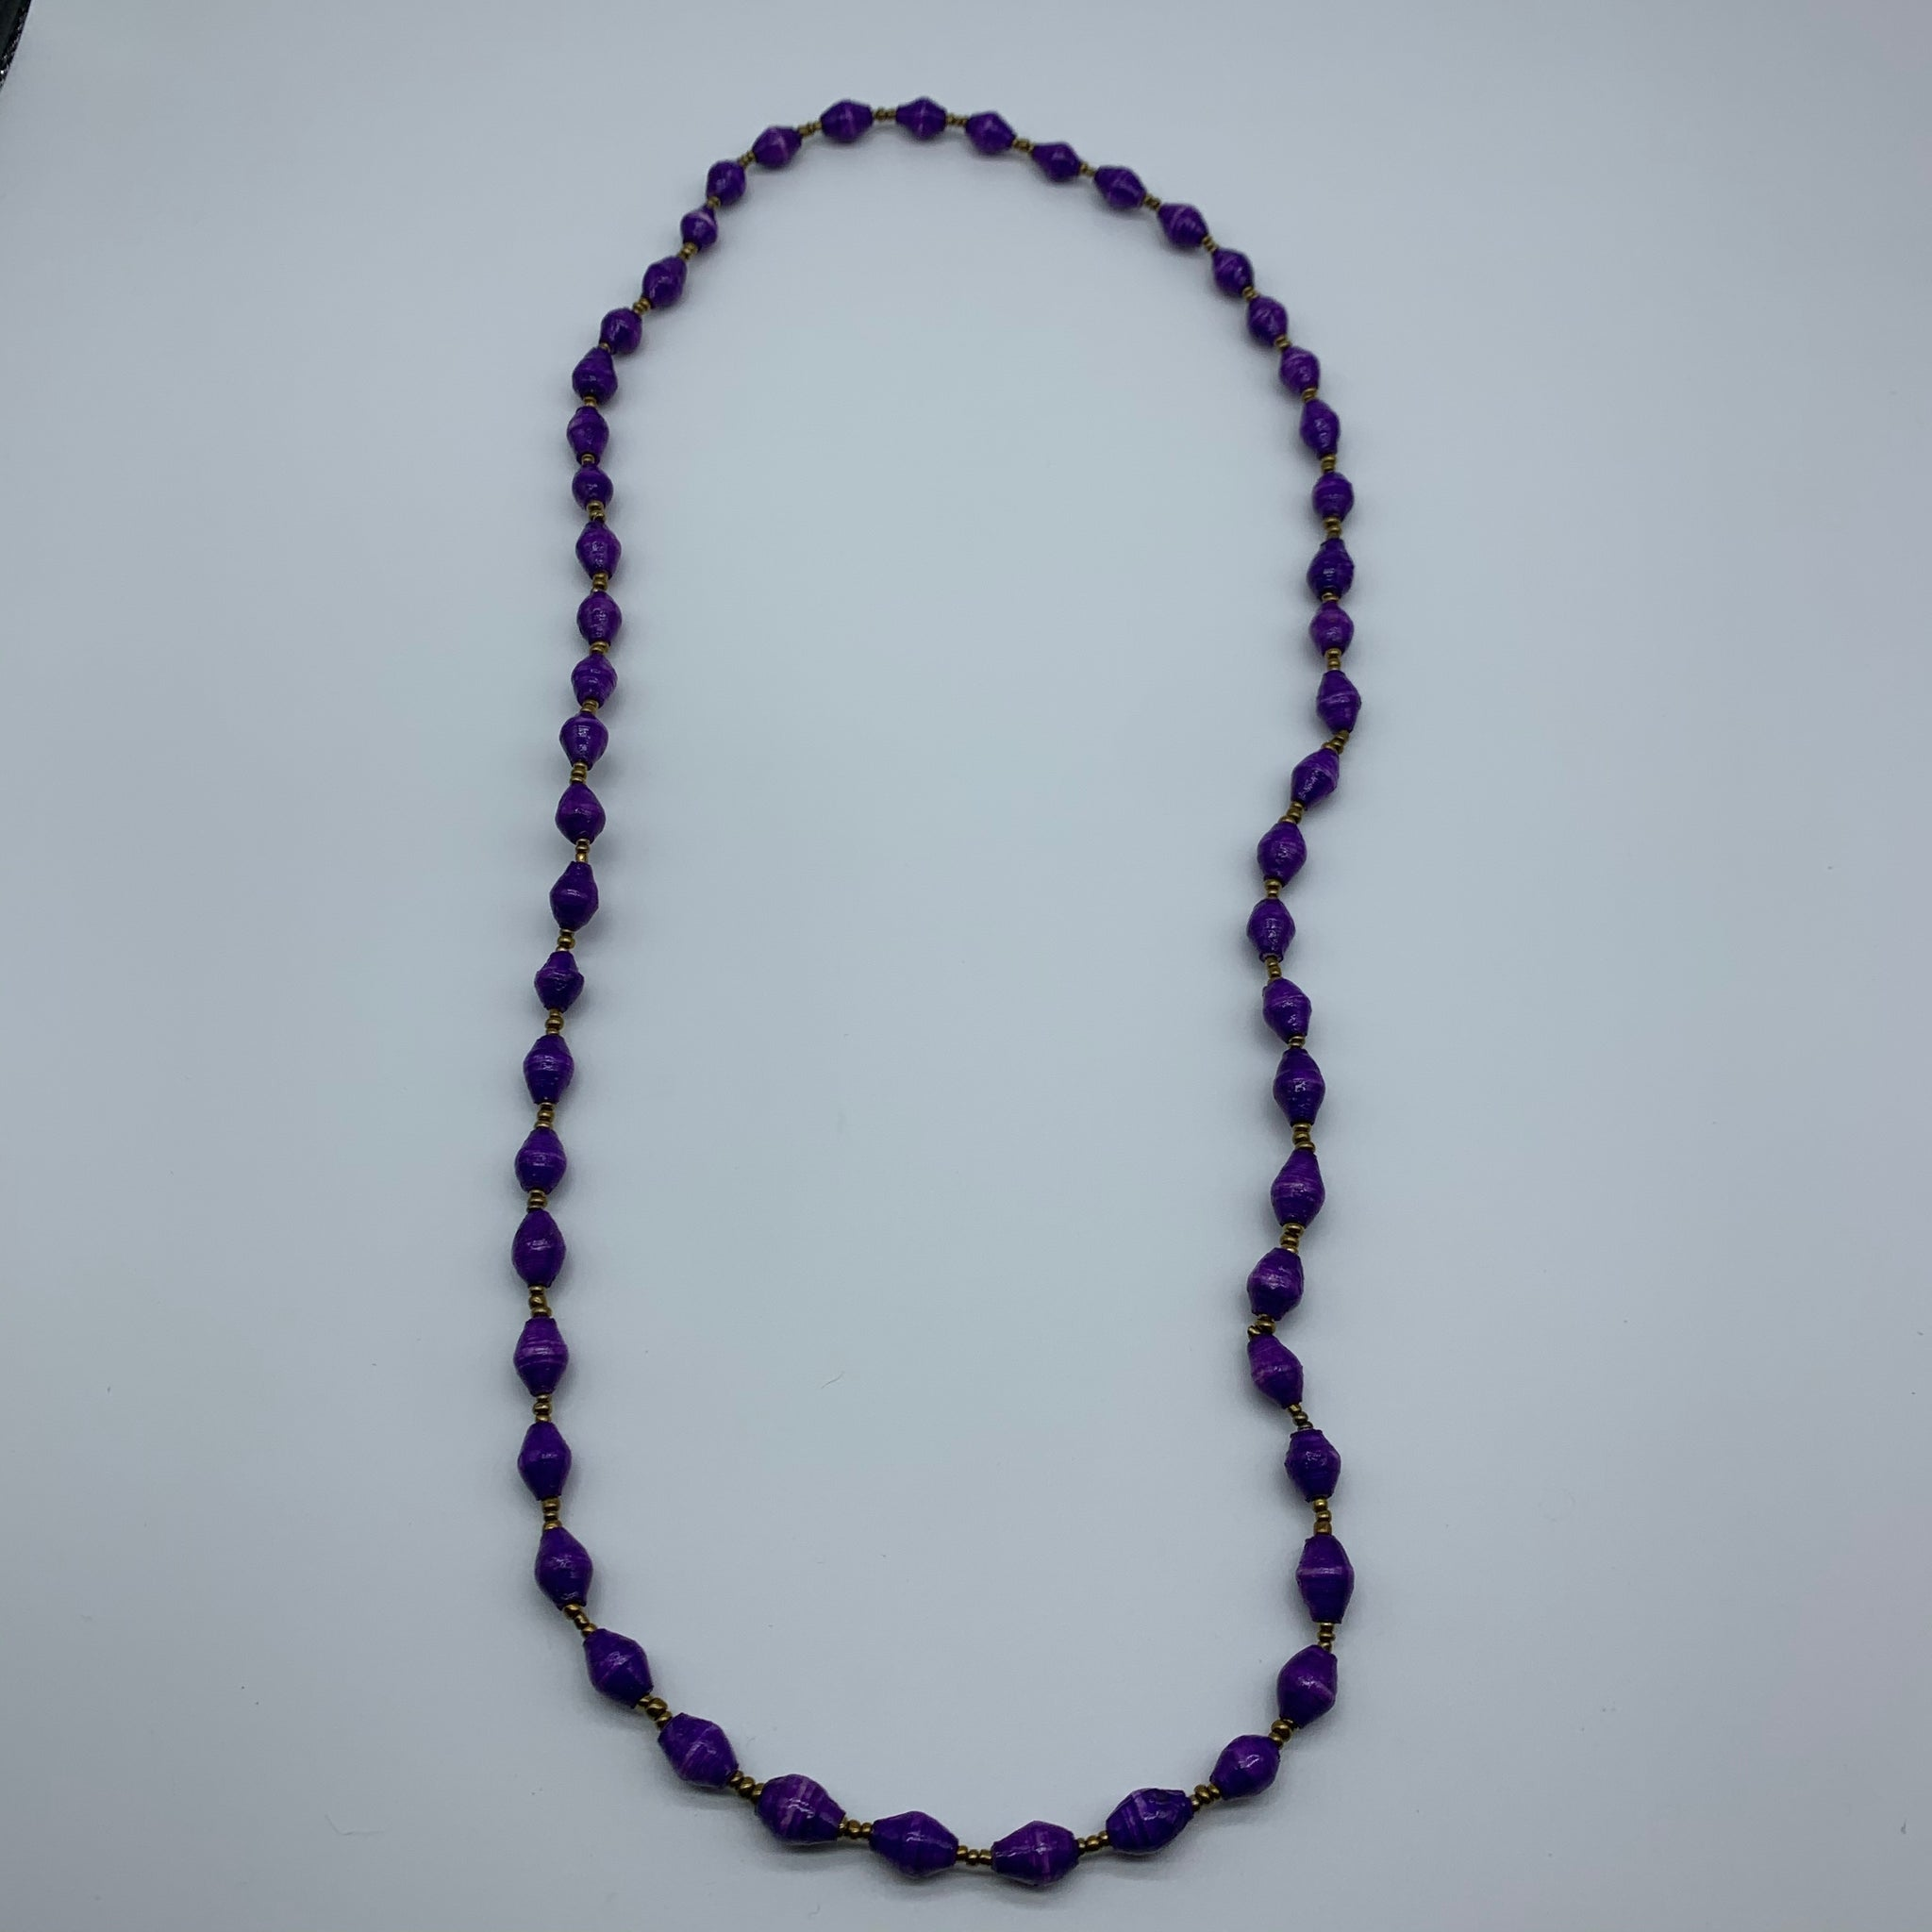 Paper Necklace with Beads-Purple Variation